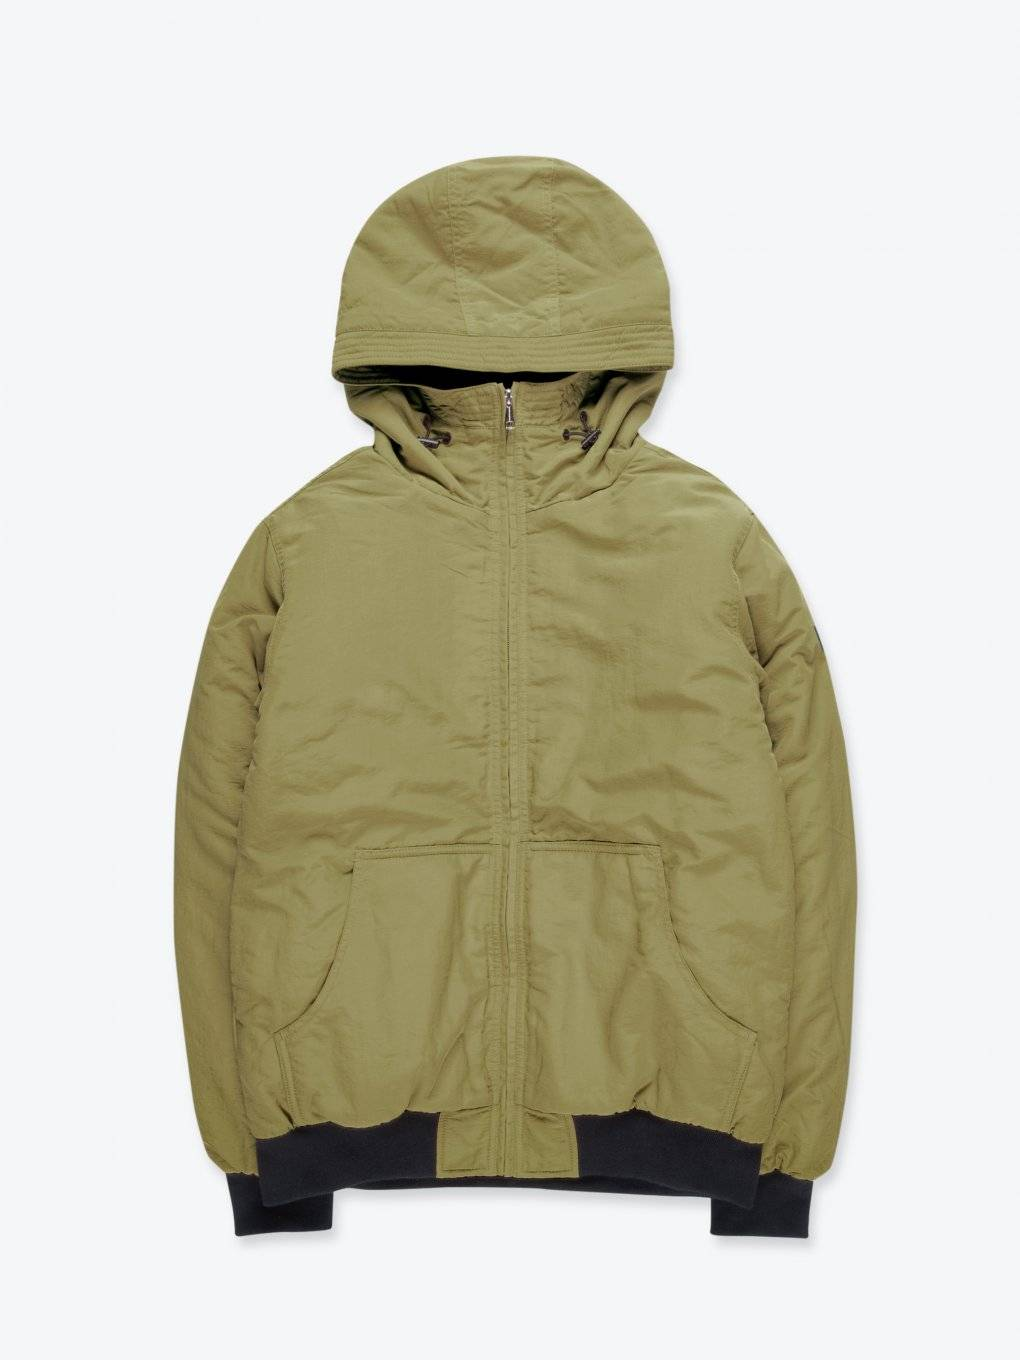 Sherpa lined padded jacket with hood